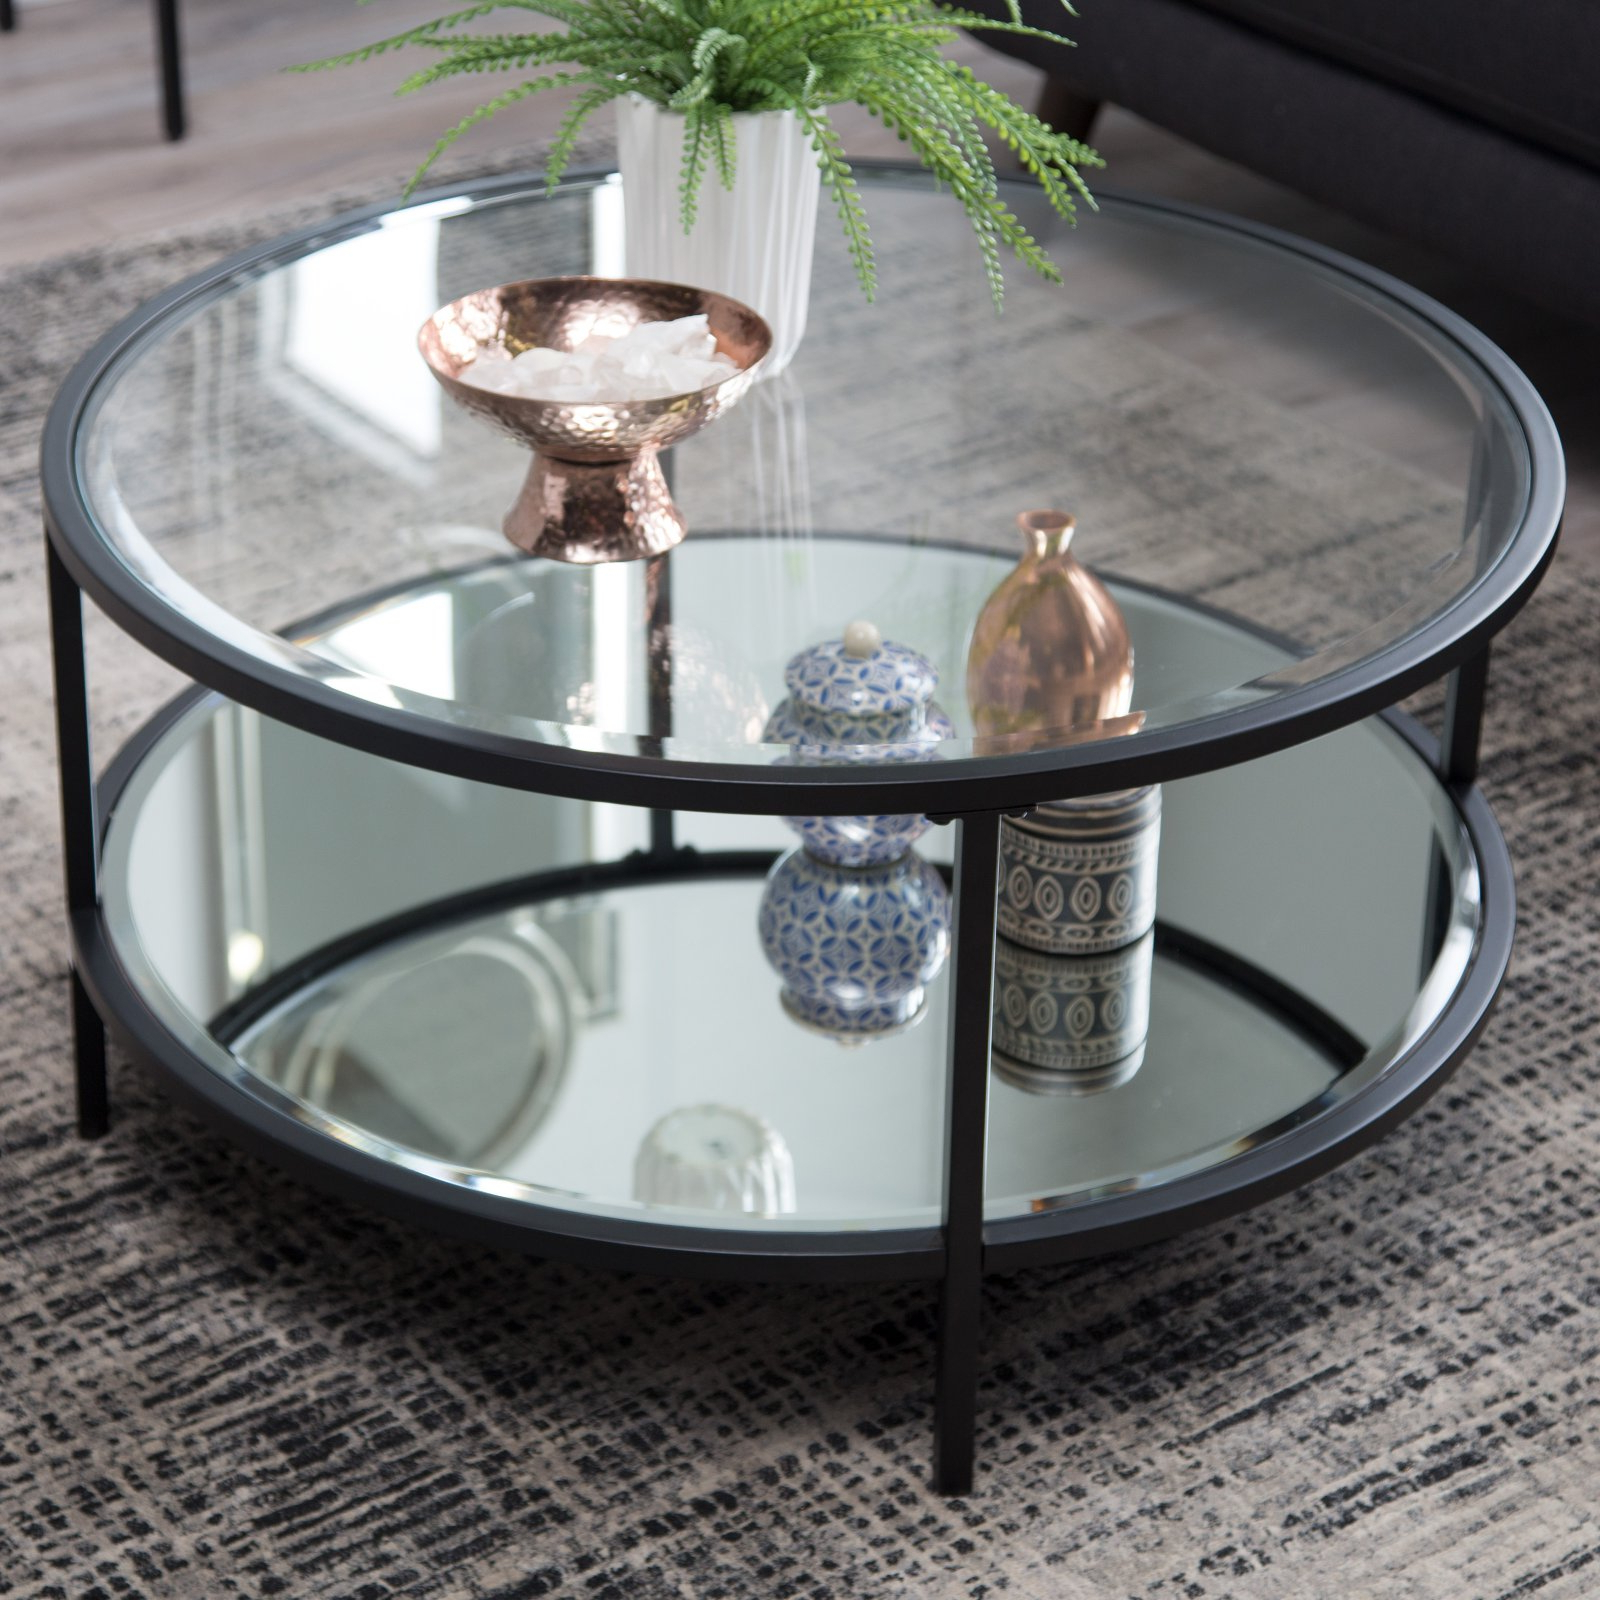 2020 Coaster Company Silver Glass Coffee Tables Within Details About Coffee Table Modern Black Metal Round Glass Home Living Room  Decor Furniture New (Gallery 16 of 20)